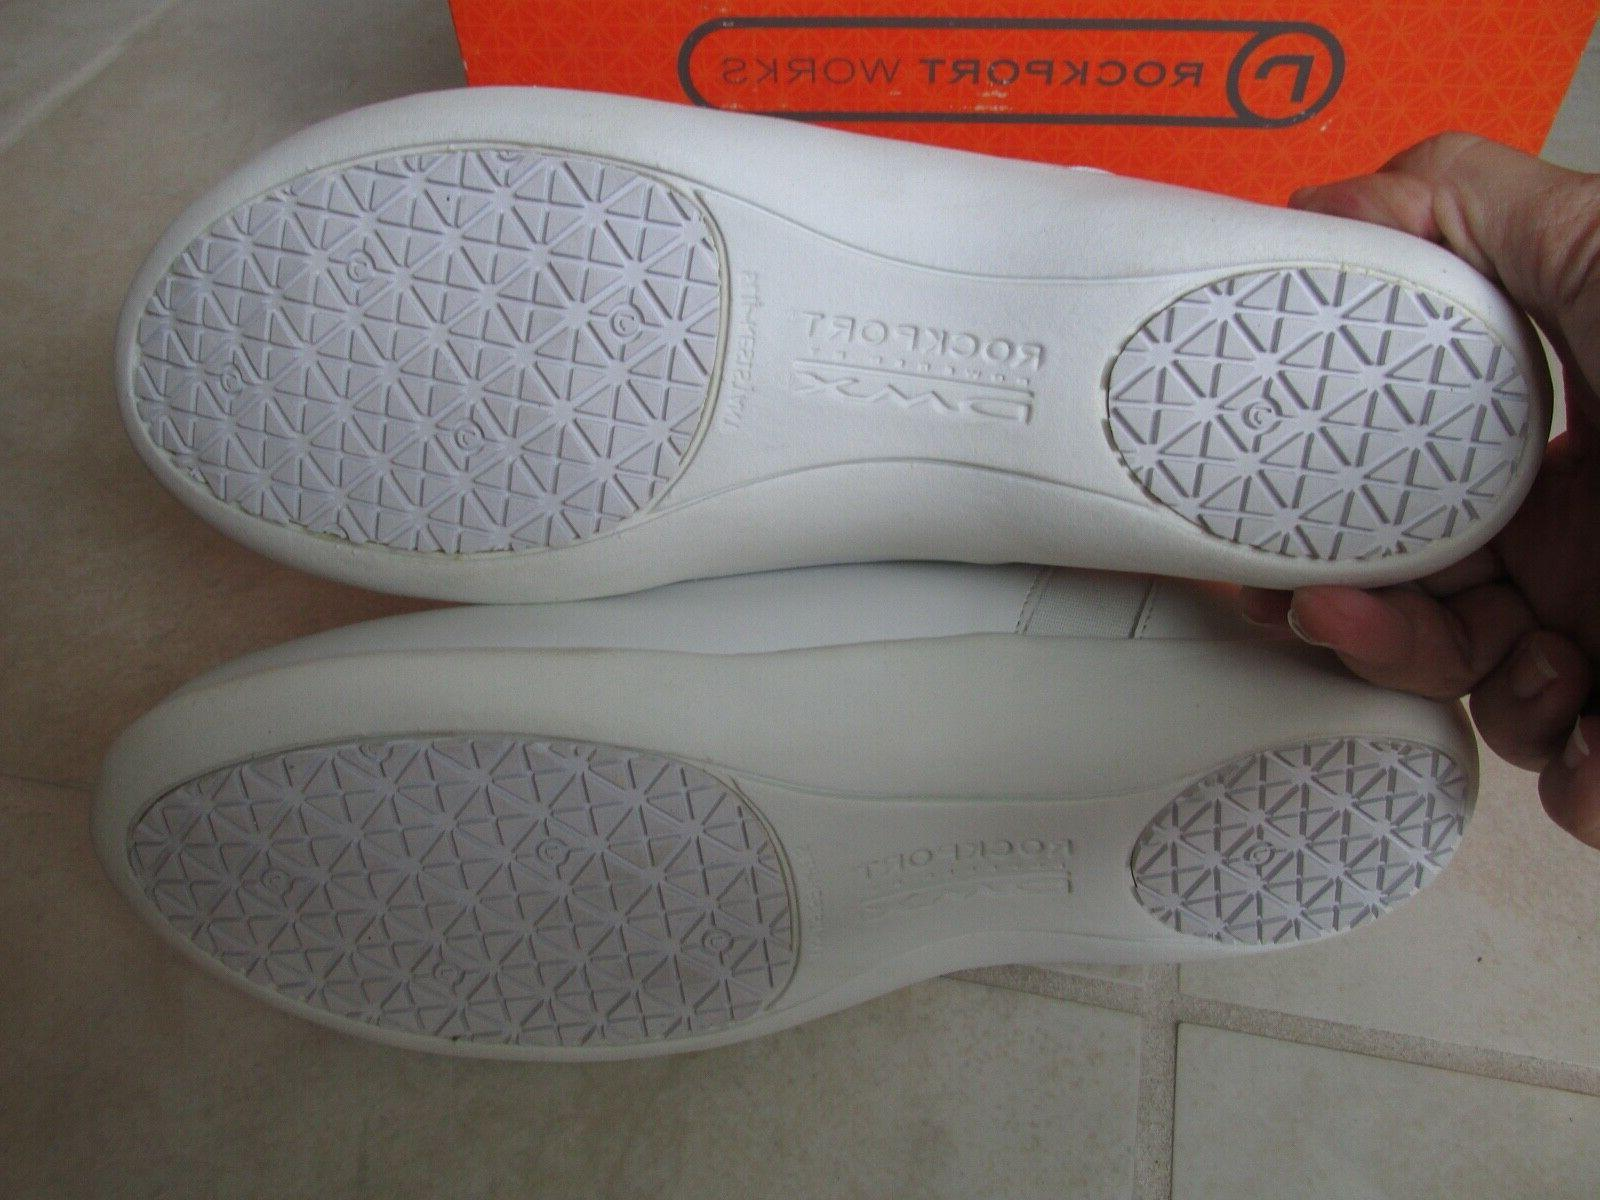 New Rockport Shoes Womens